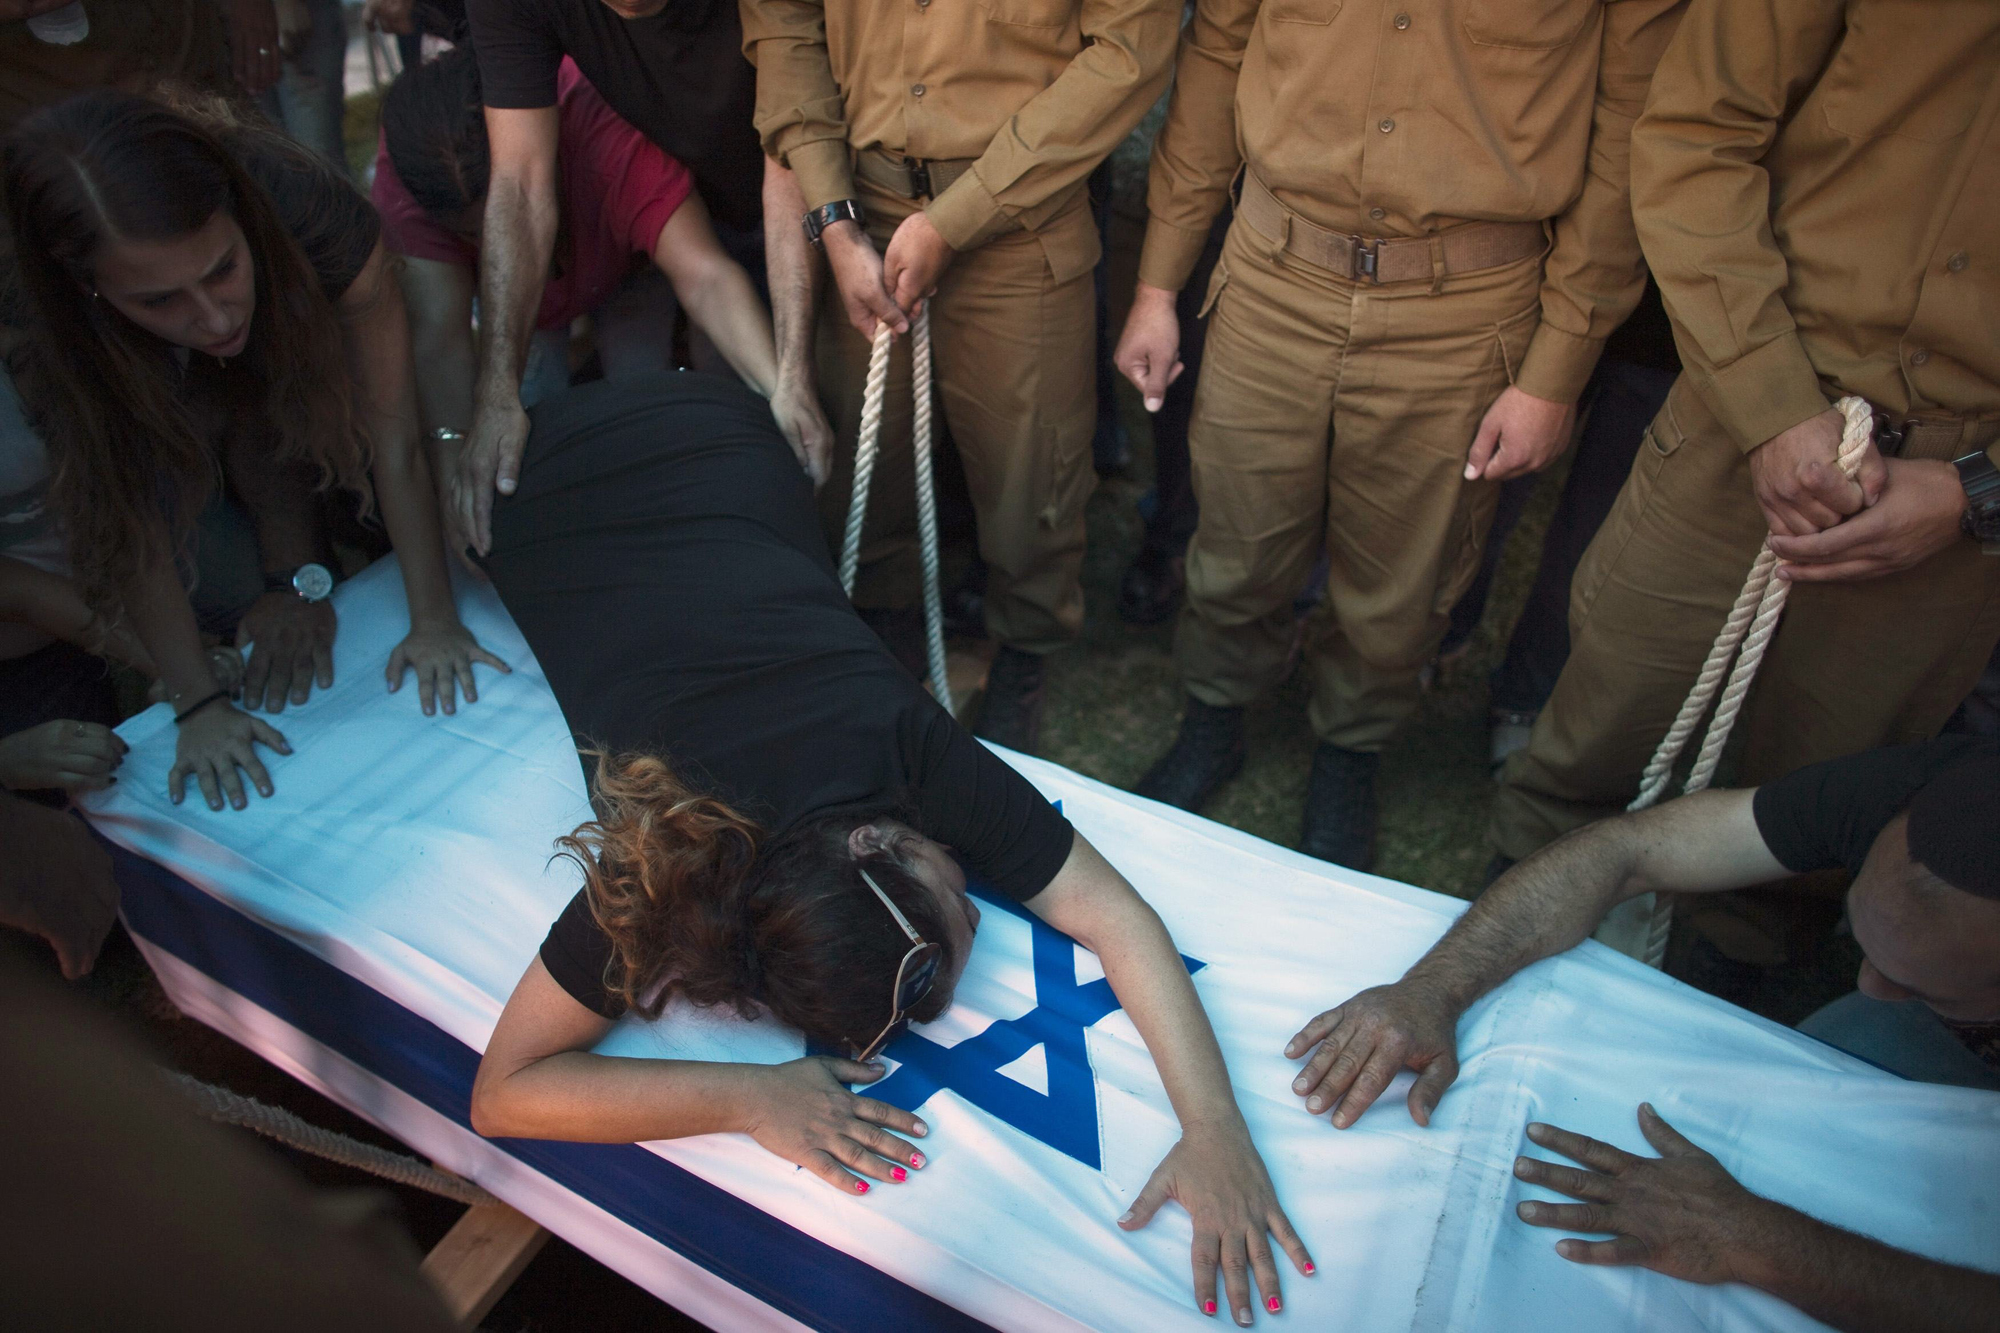 The mother of Israeli soldier Tal Yifrah mourns over his flag-covered coffin during his funeral in Rishon Lezion near Tel Aviv, July 22, 2014.